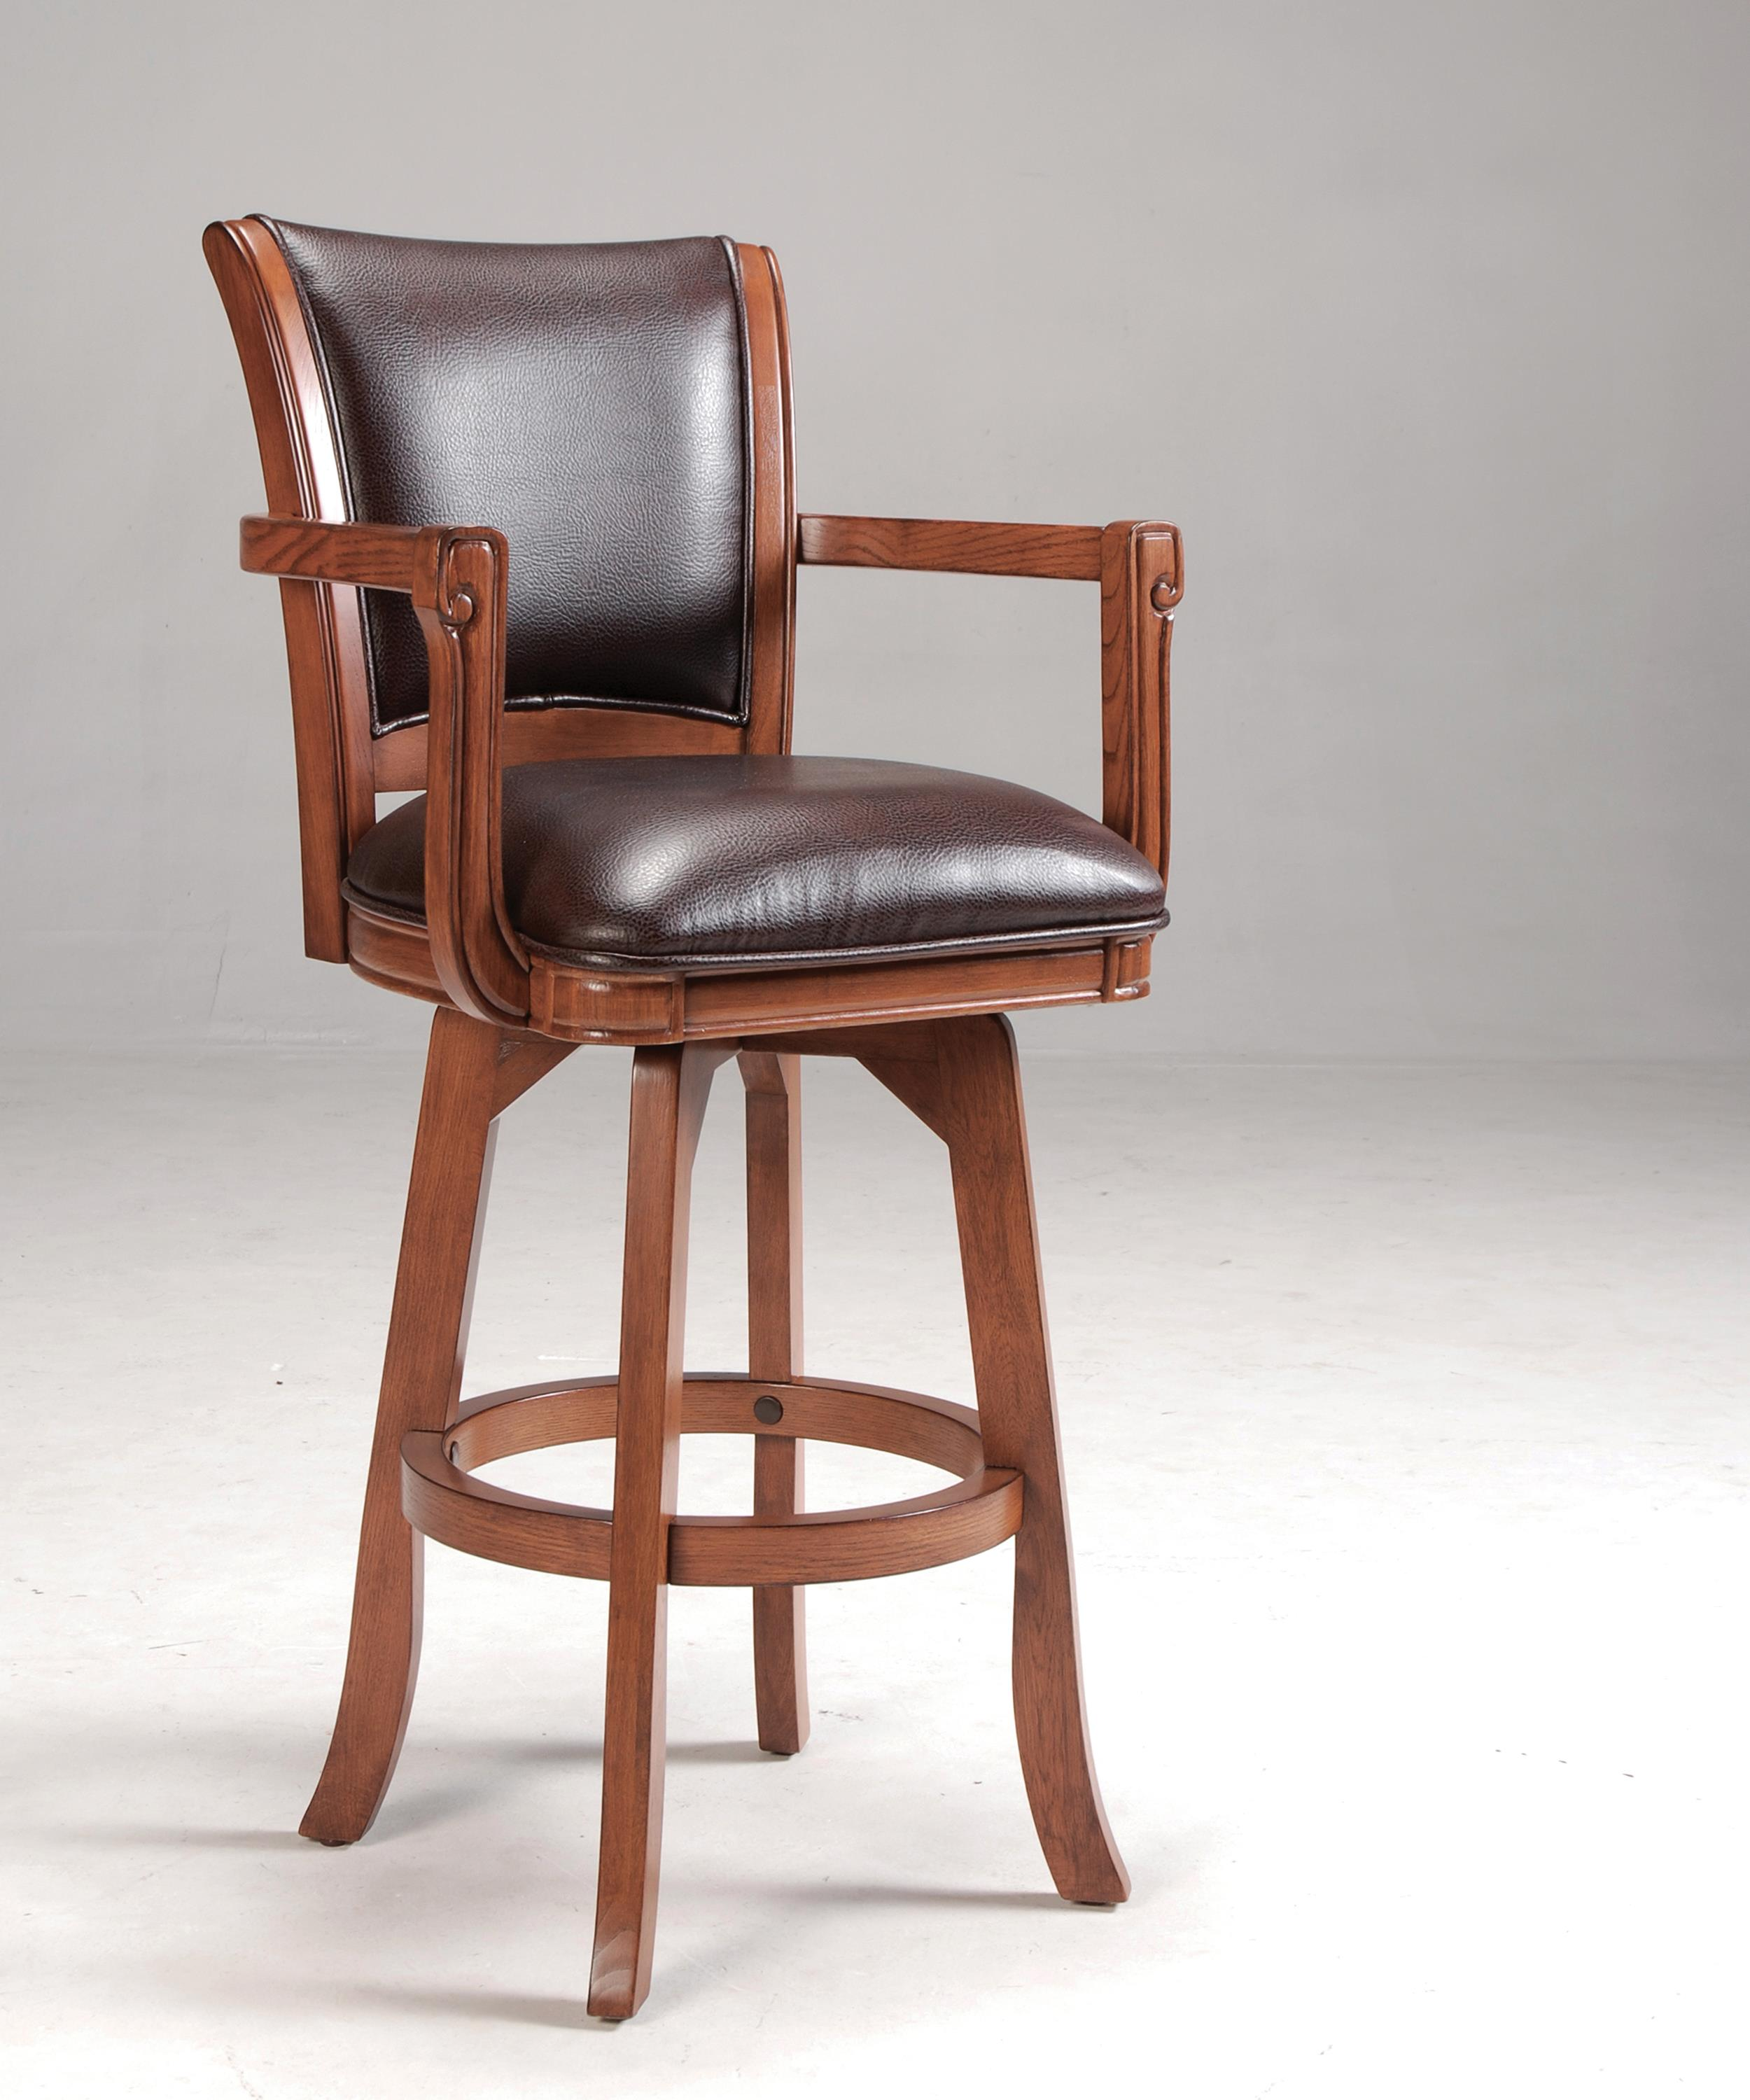 Hillsdale Park View Counter Stool with Arms amp Leather  : products2Fhillsdale2Fcolor2Fpark20view2041864186 826 b from www.dunkandbright.com size 2500 x 3000 jpeg 448kB